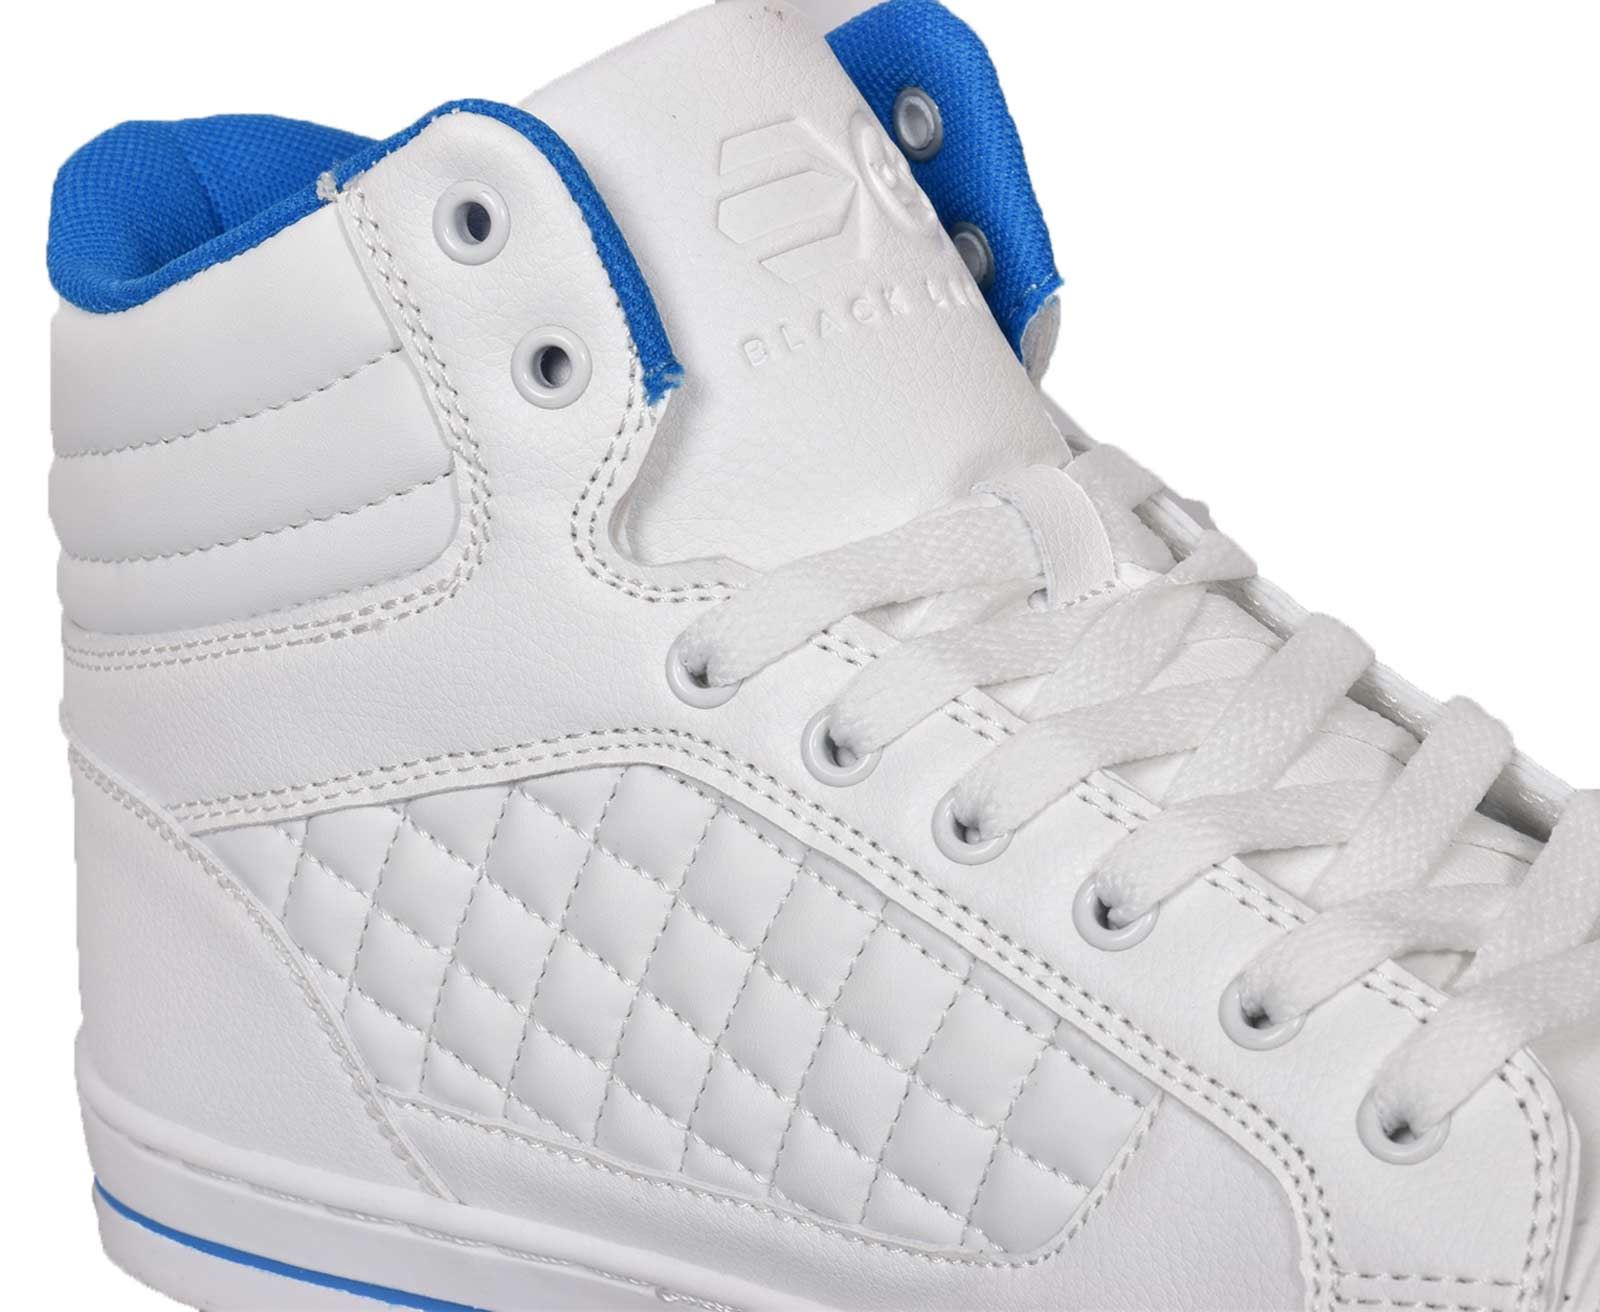 Mens-Trainers-Lace-up-Crosshatch-High-Tops-Ankle-Padded-Shoes-New-UK-Sizes-7-12 thumbnail 24